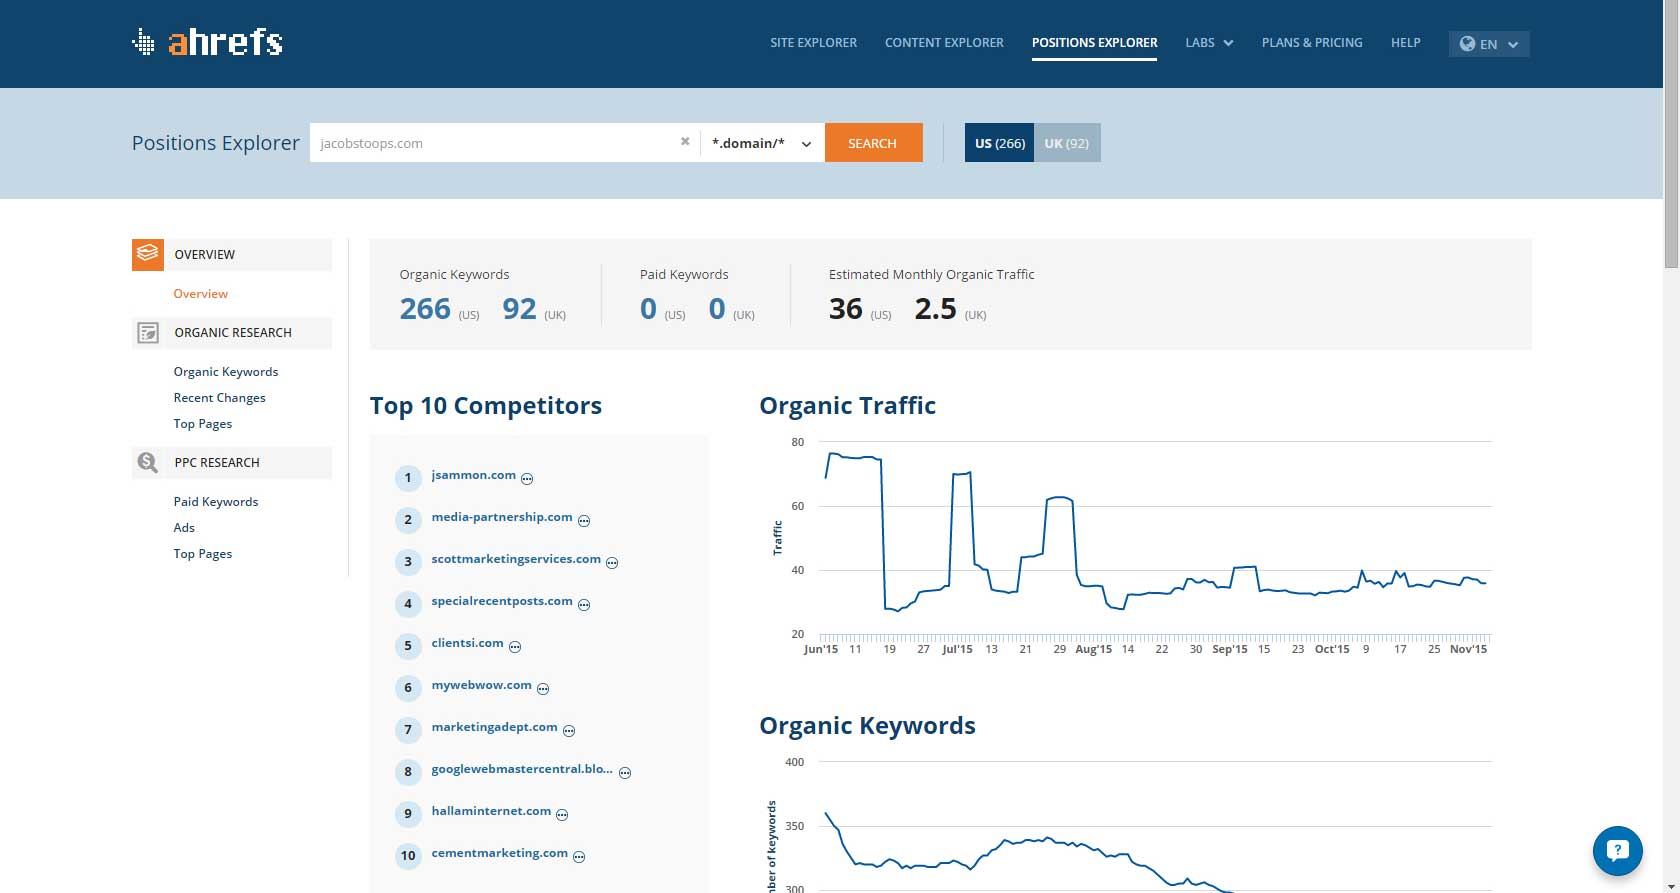 AHrefs review: Positions Explorer #1